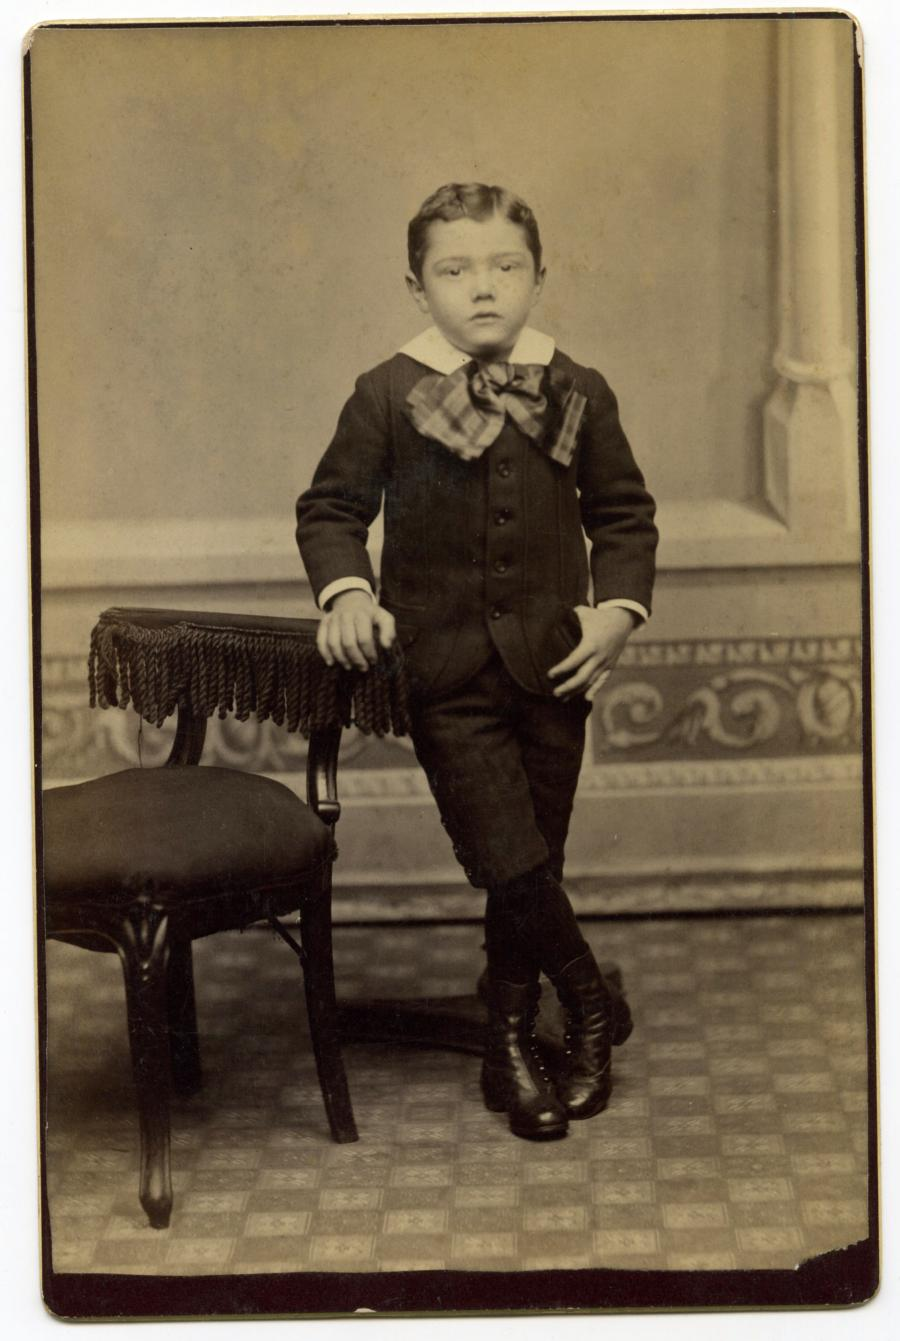 victorian photo this guy is cute boy thumb in pocket ebay